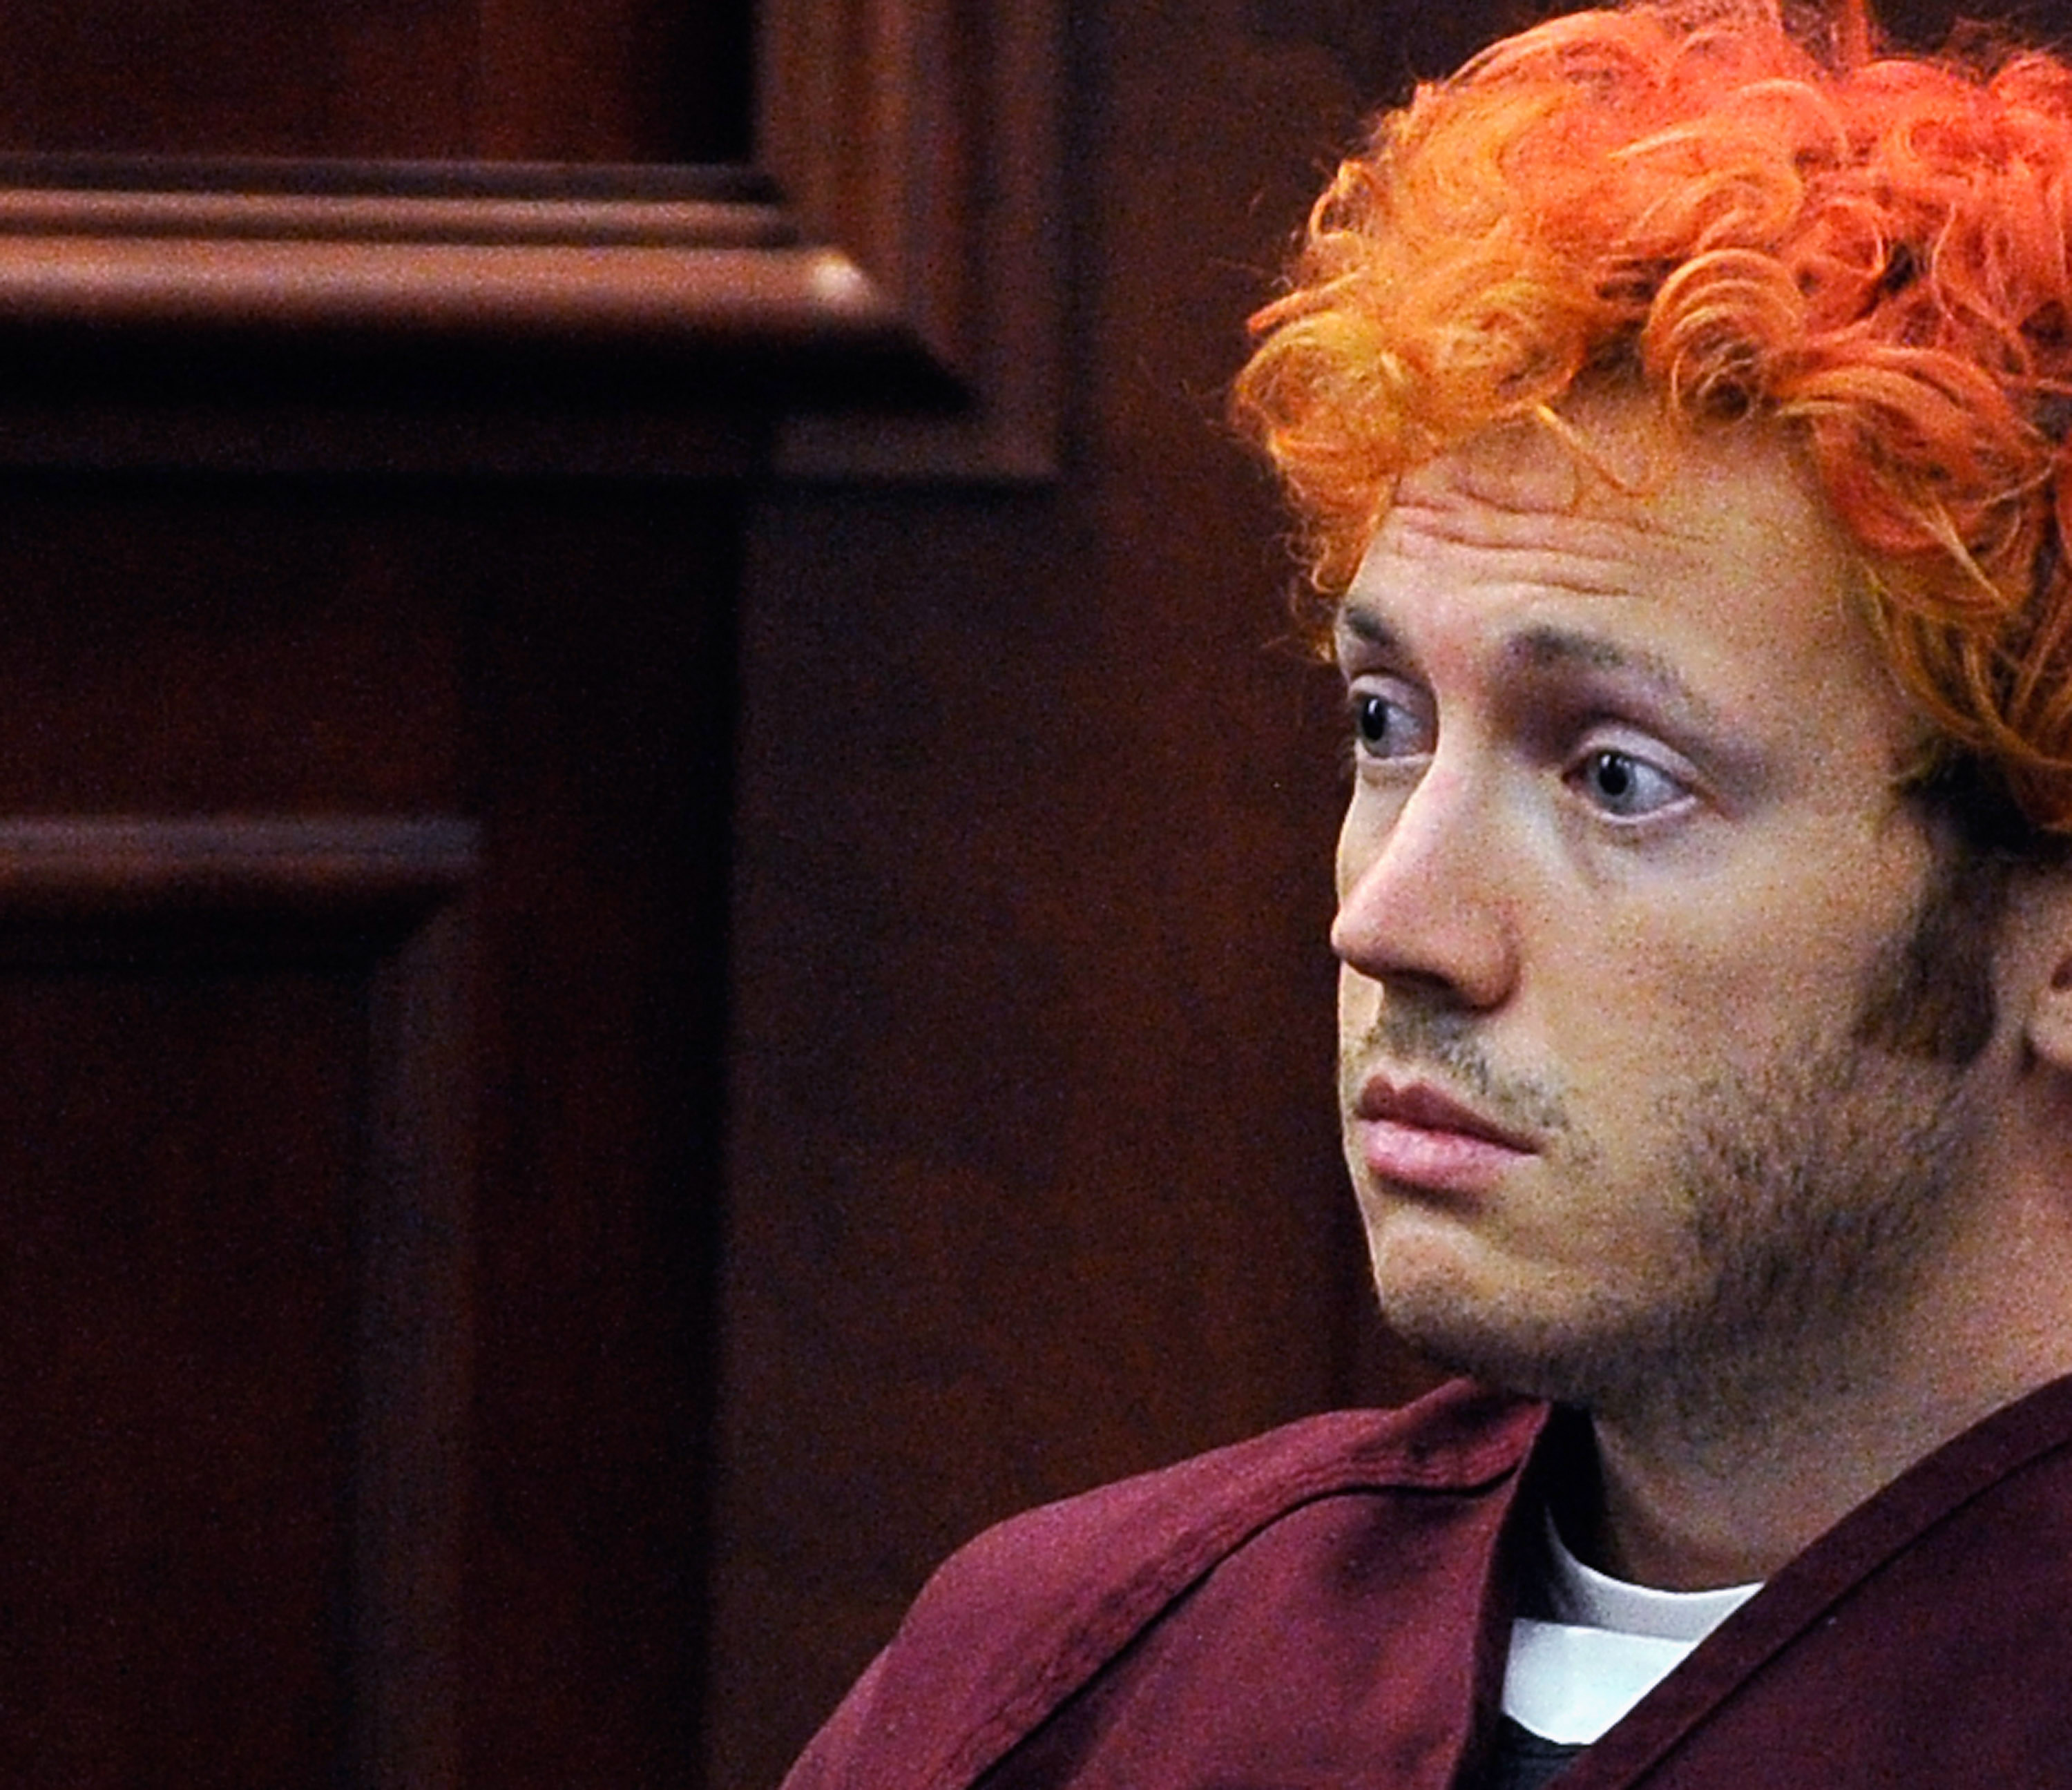 James Holmes Sentenced To Life In Prison For The 2012